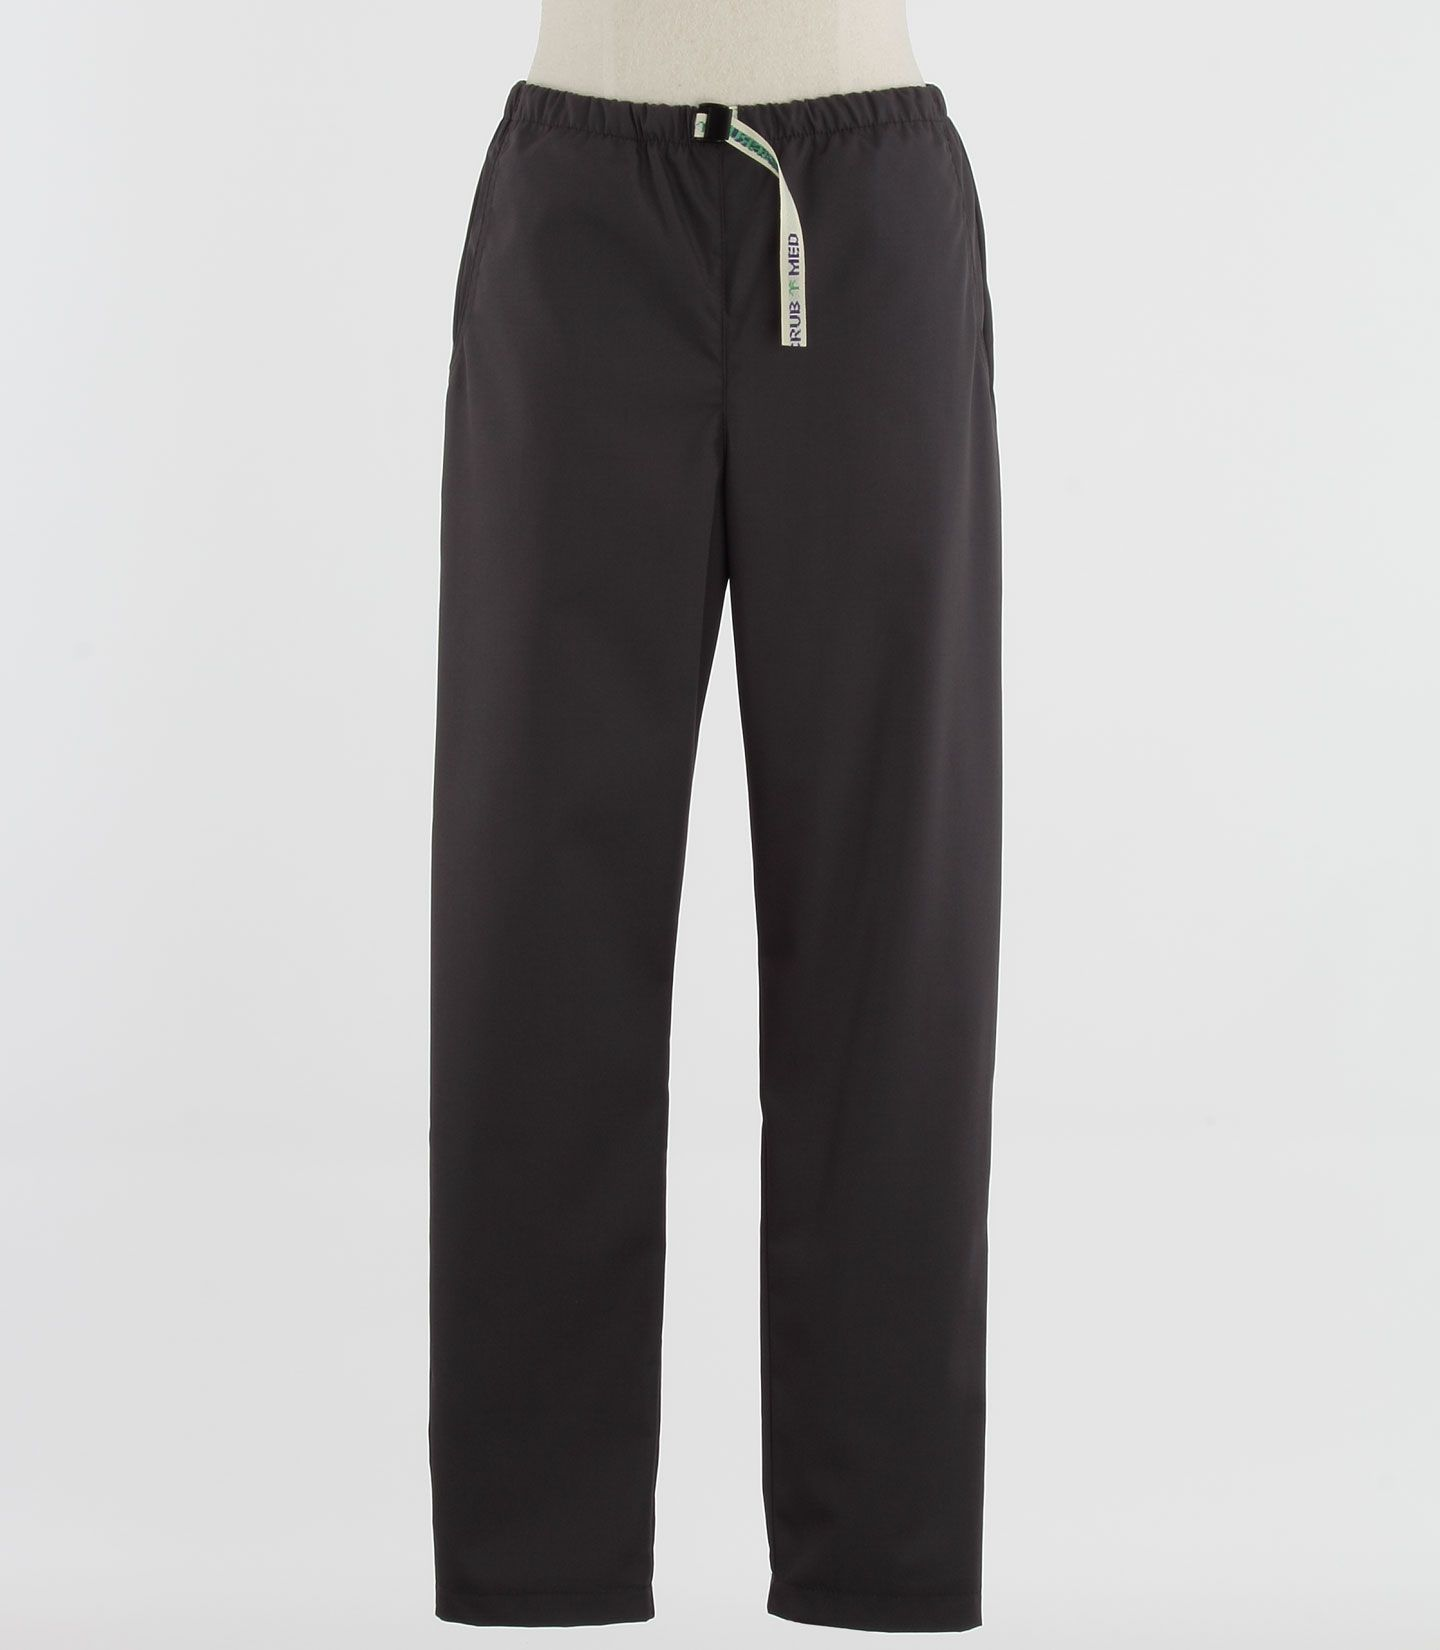 Scrub Med Womens Belted Scrub Pants in Charcoal